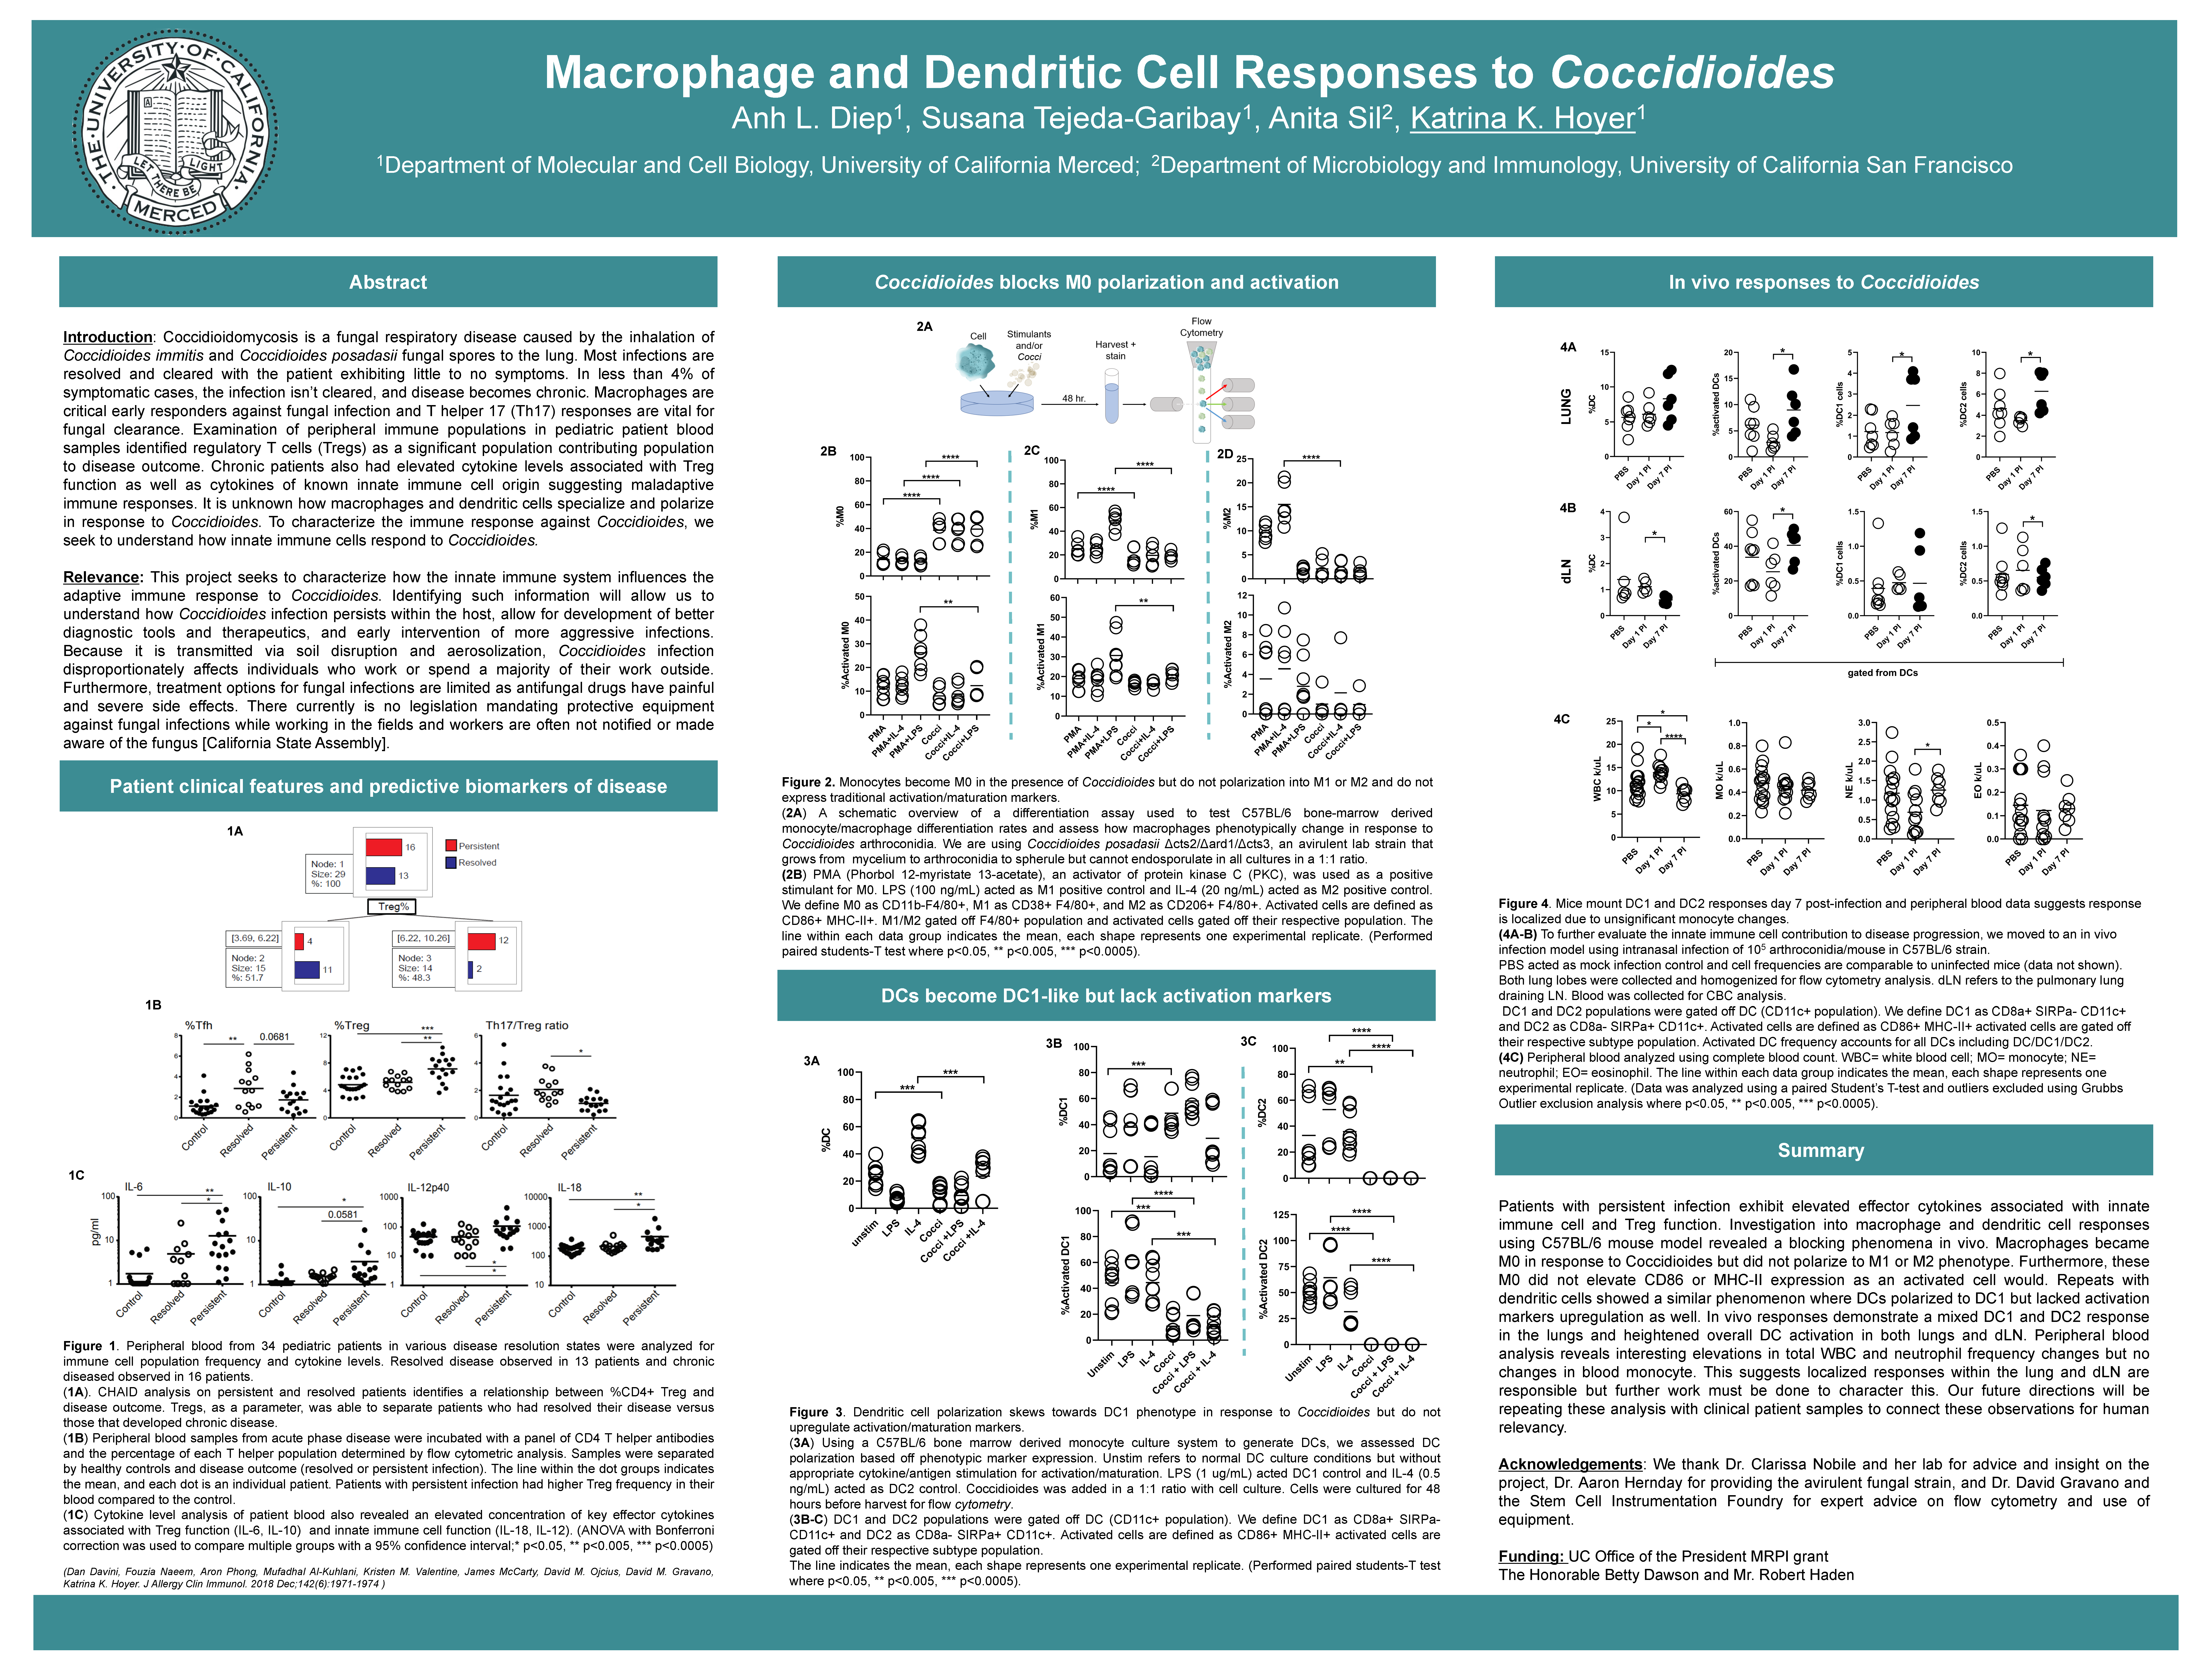 Macrophage and Dendritic Cell Responses to Coccidioides